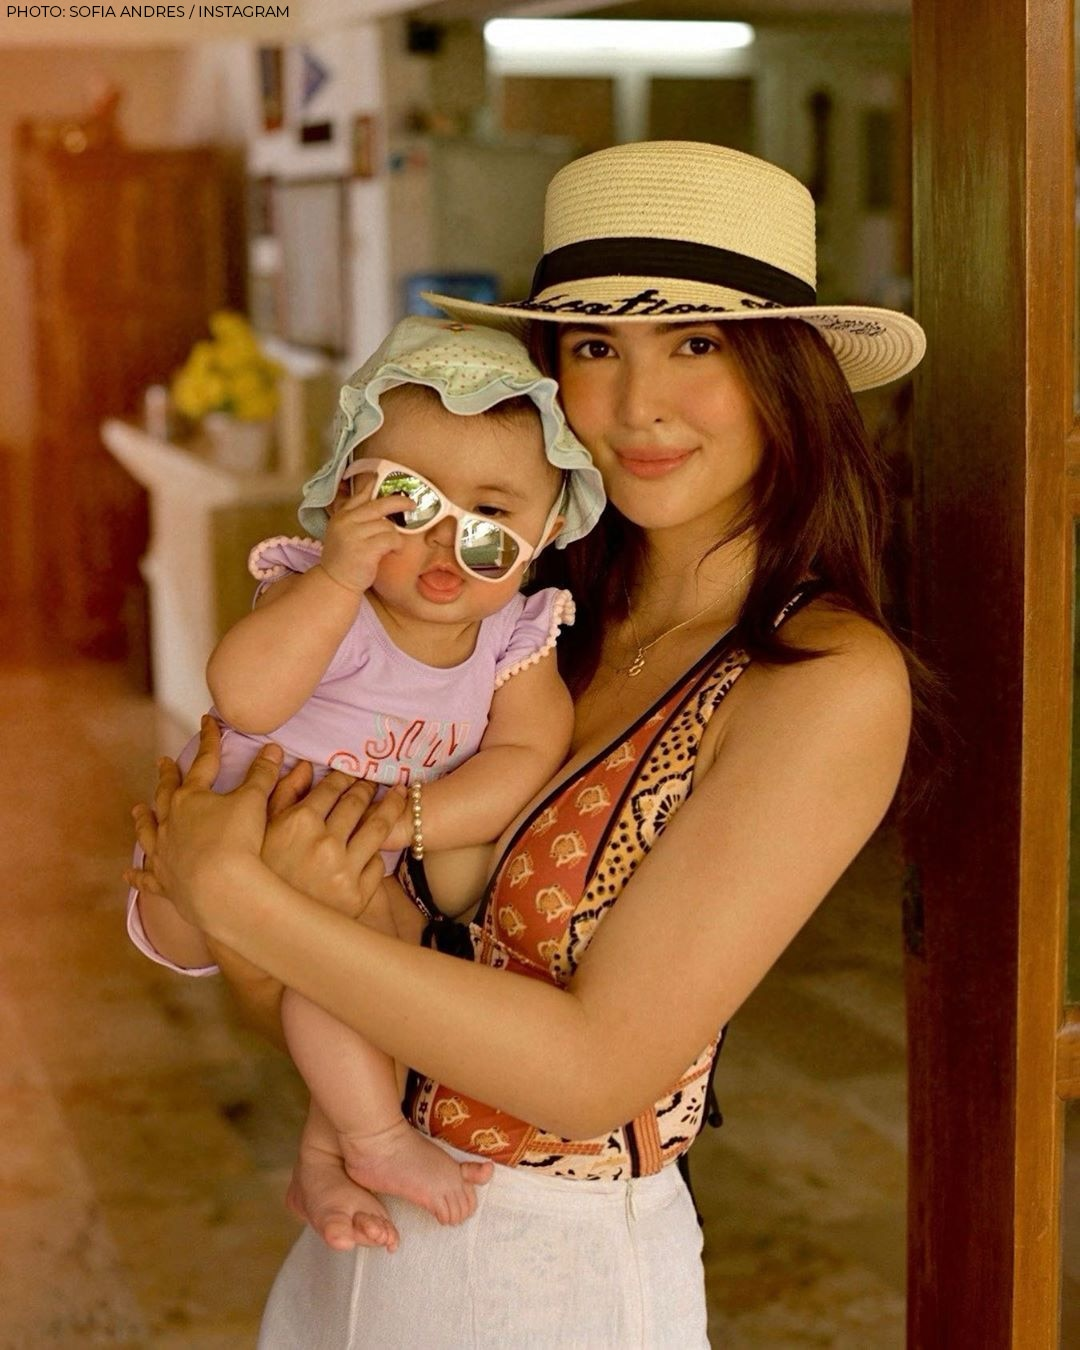 Sofia Andres' adorable moments with Baby Zoe!